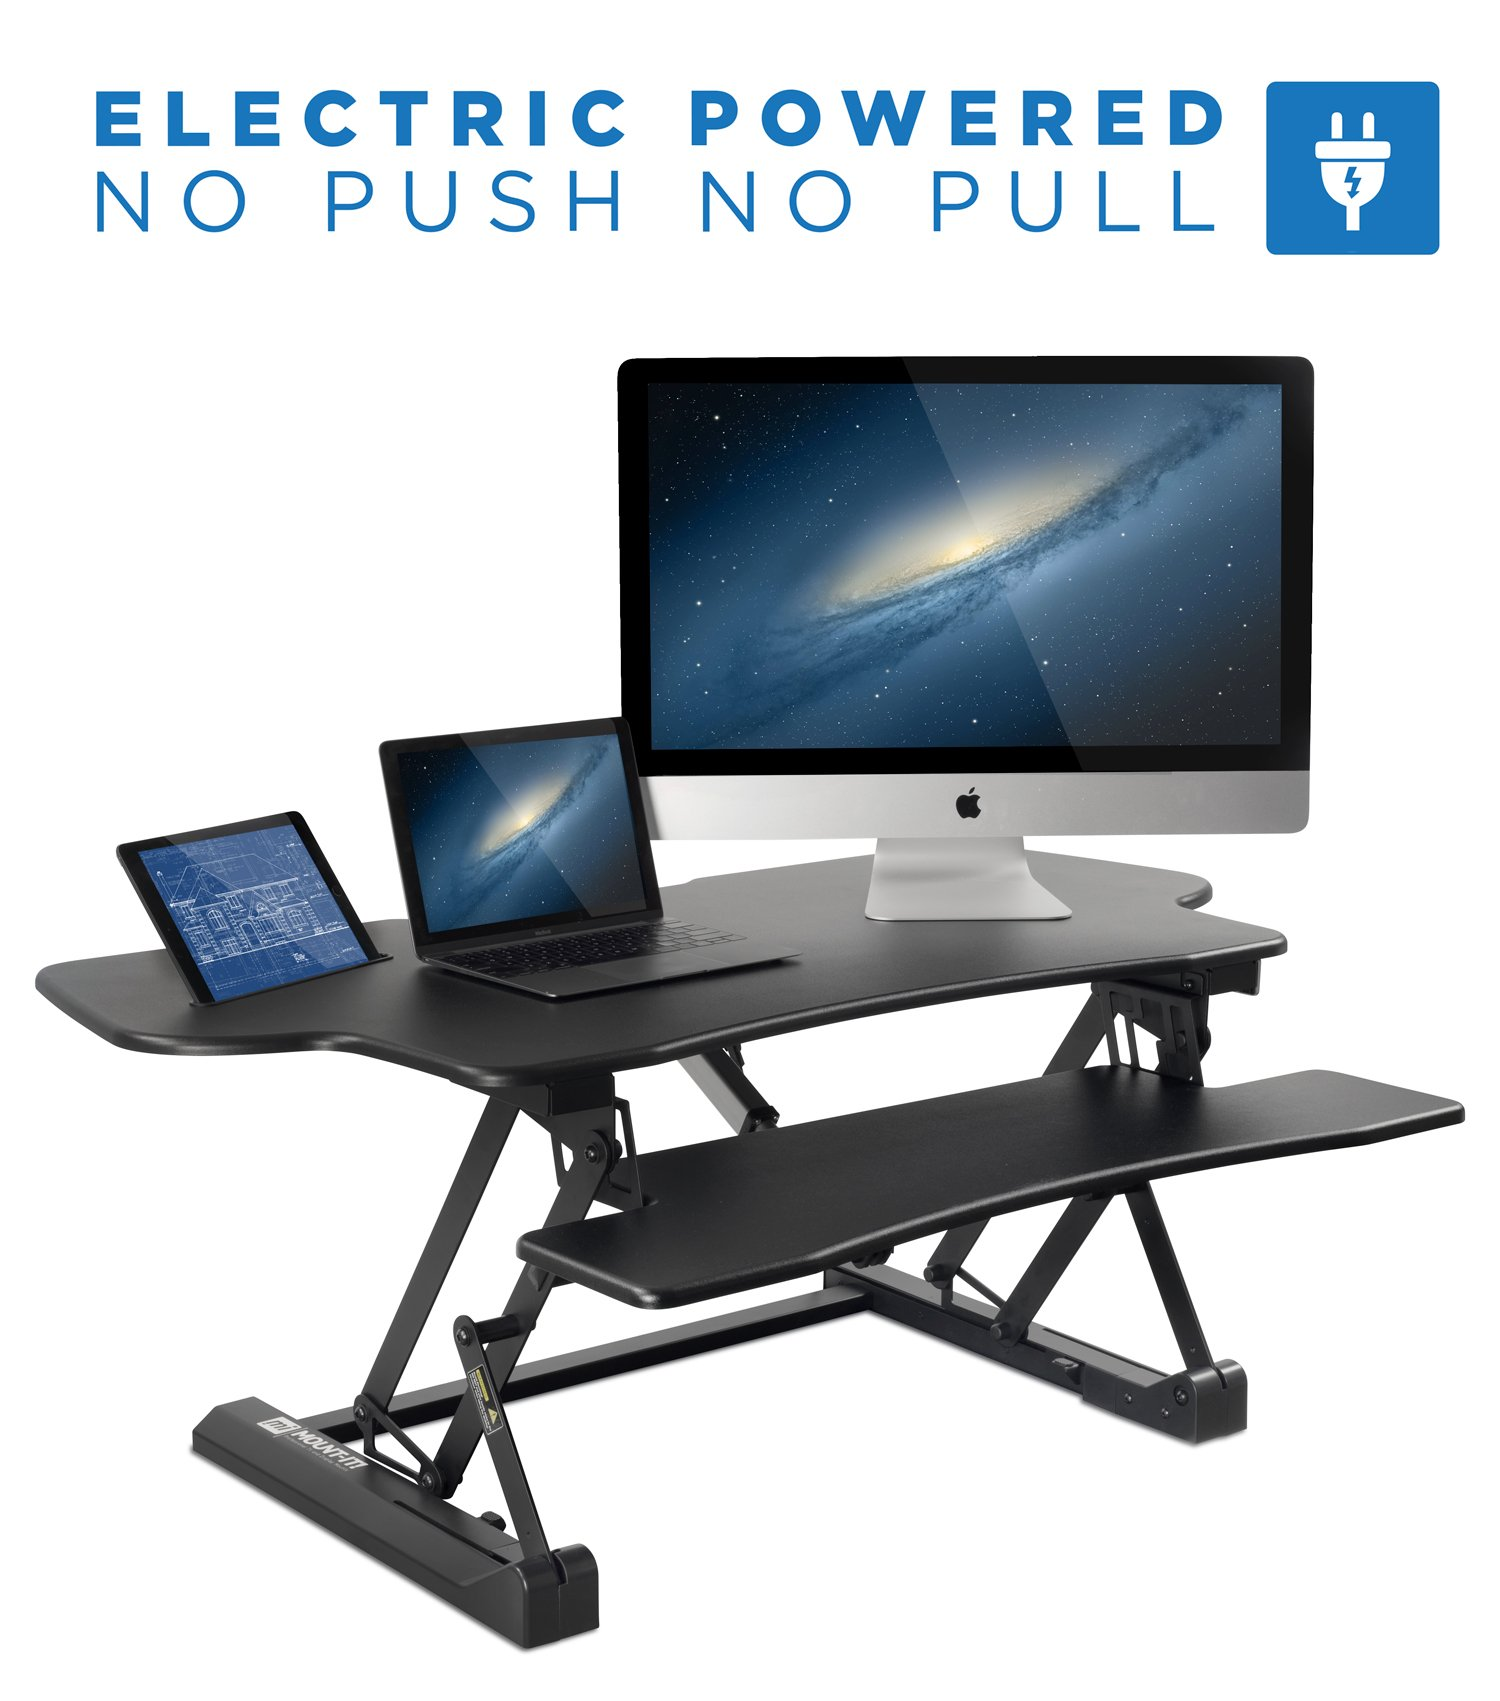 Mount-It! Electric Standing Desk Converter, 48 Inch Extra Wide Motorized Sit Stand Desk with Built in USB Port, Ergonomic Height Adjustable Workstation, Black (MI-7962) by Mount-It!